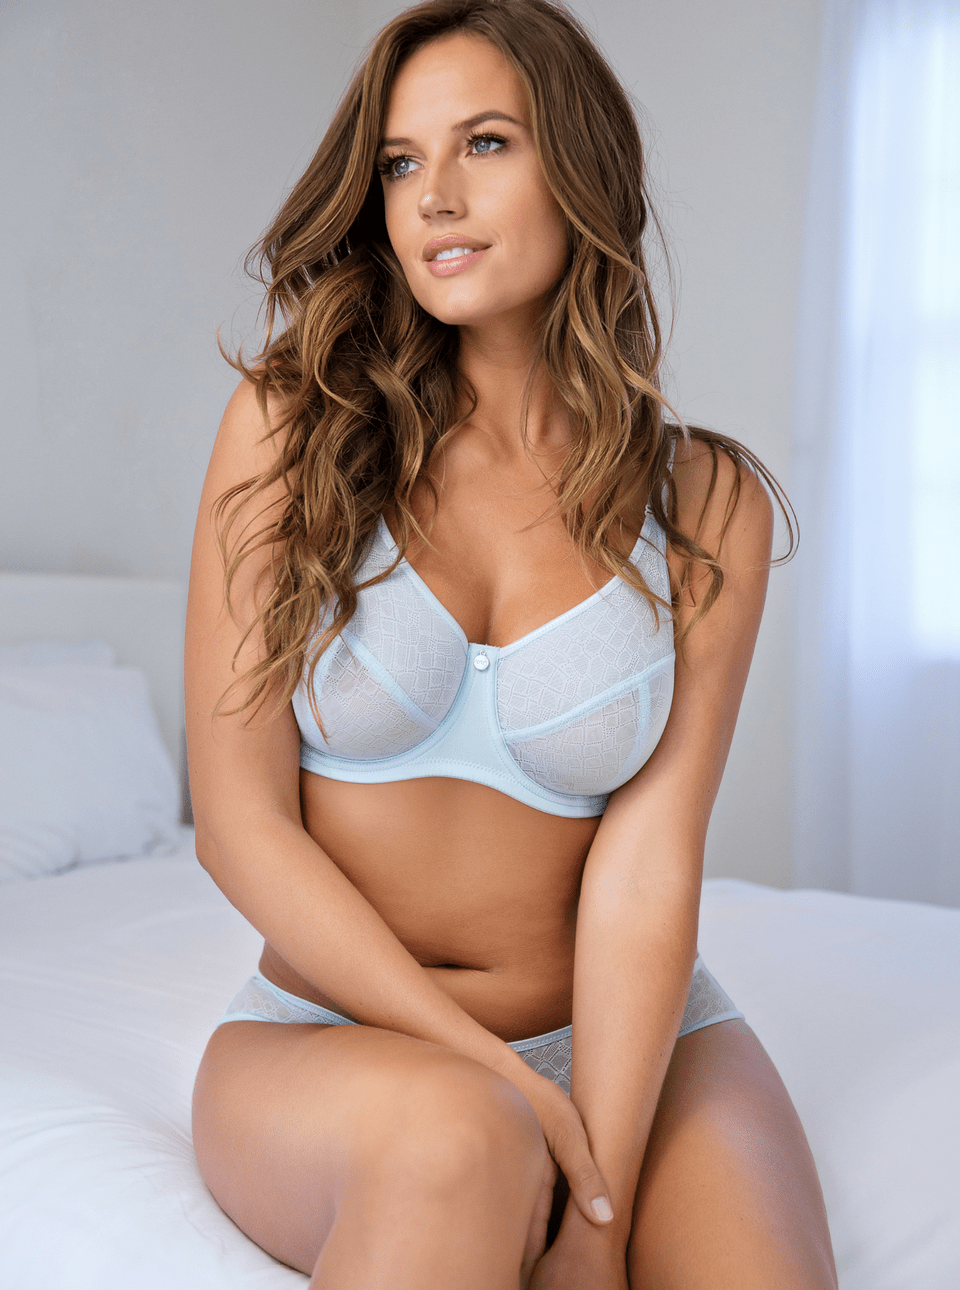 enora whisper blue minimizer bra - The Only 8 Bras You Need In Your Spring Wardrobe